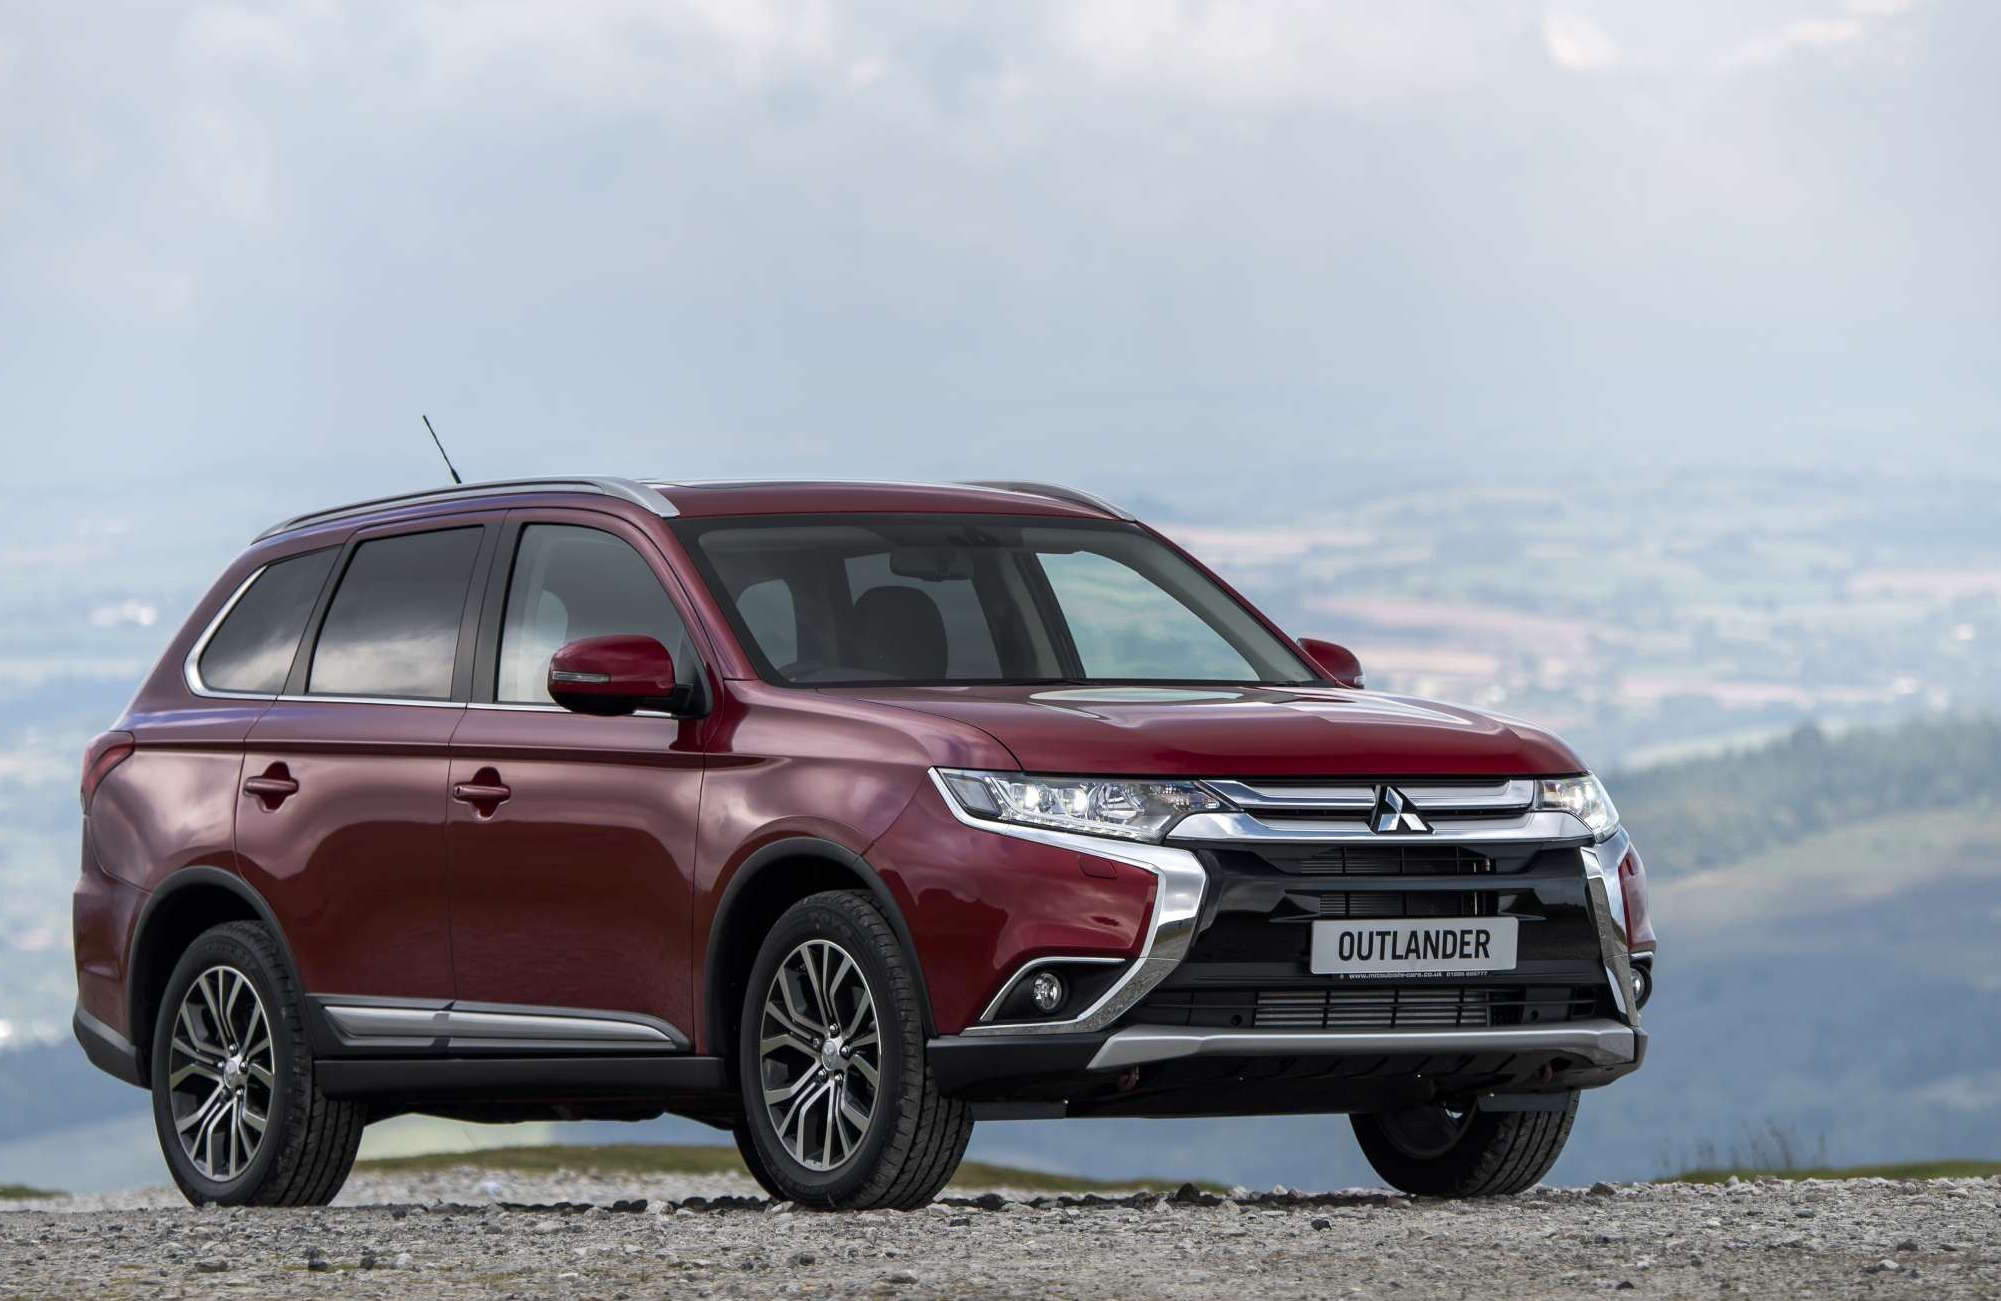 Maroon Mitsubishi Outlander parked overlooking a countryside view